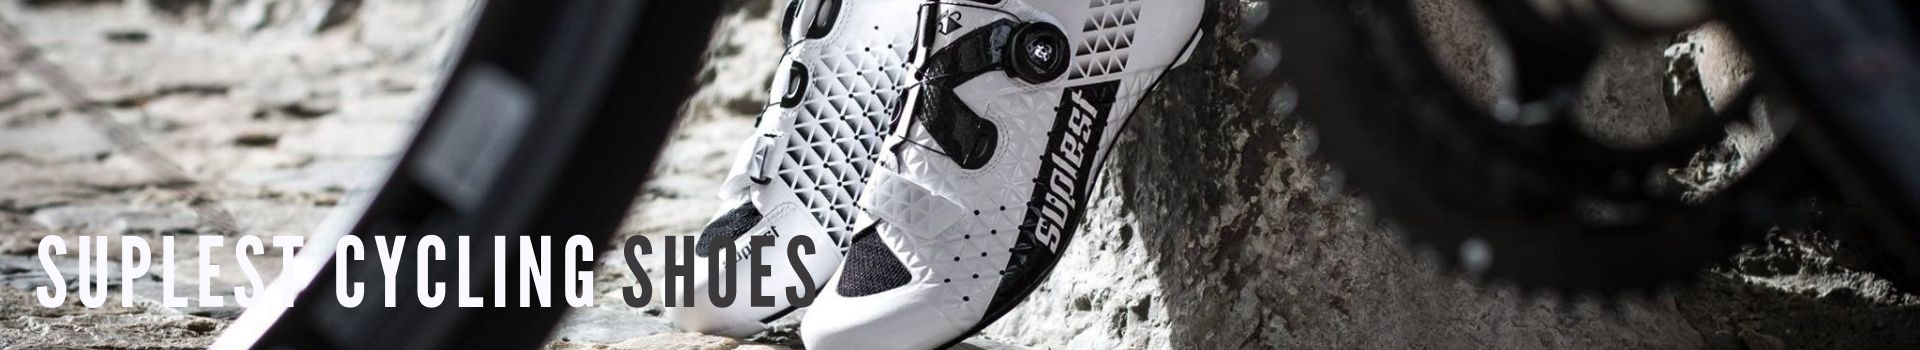 SUPLEST Cycling Shoes ROAD Swissmade by Cyclists